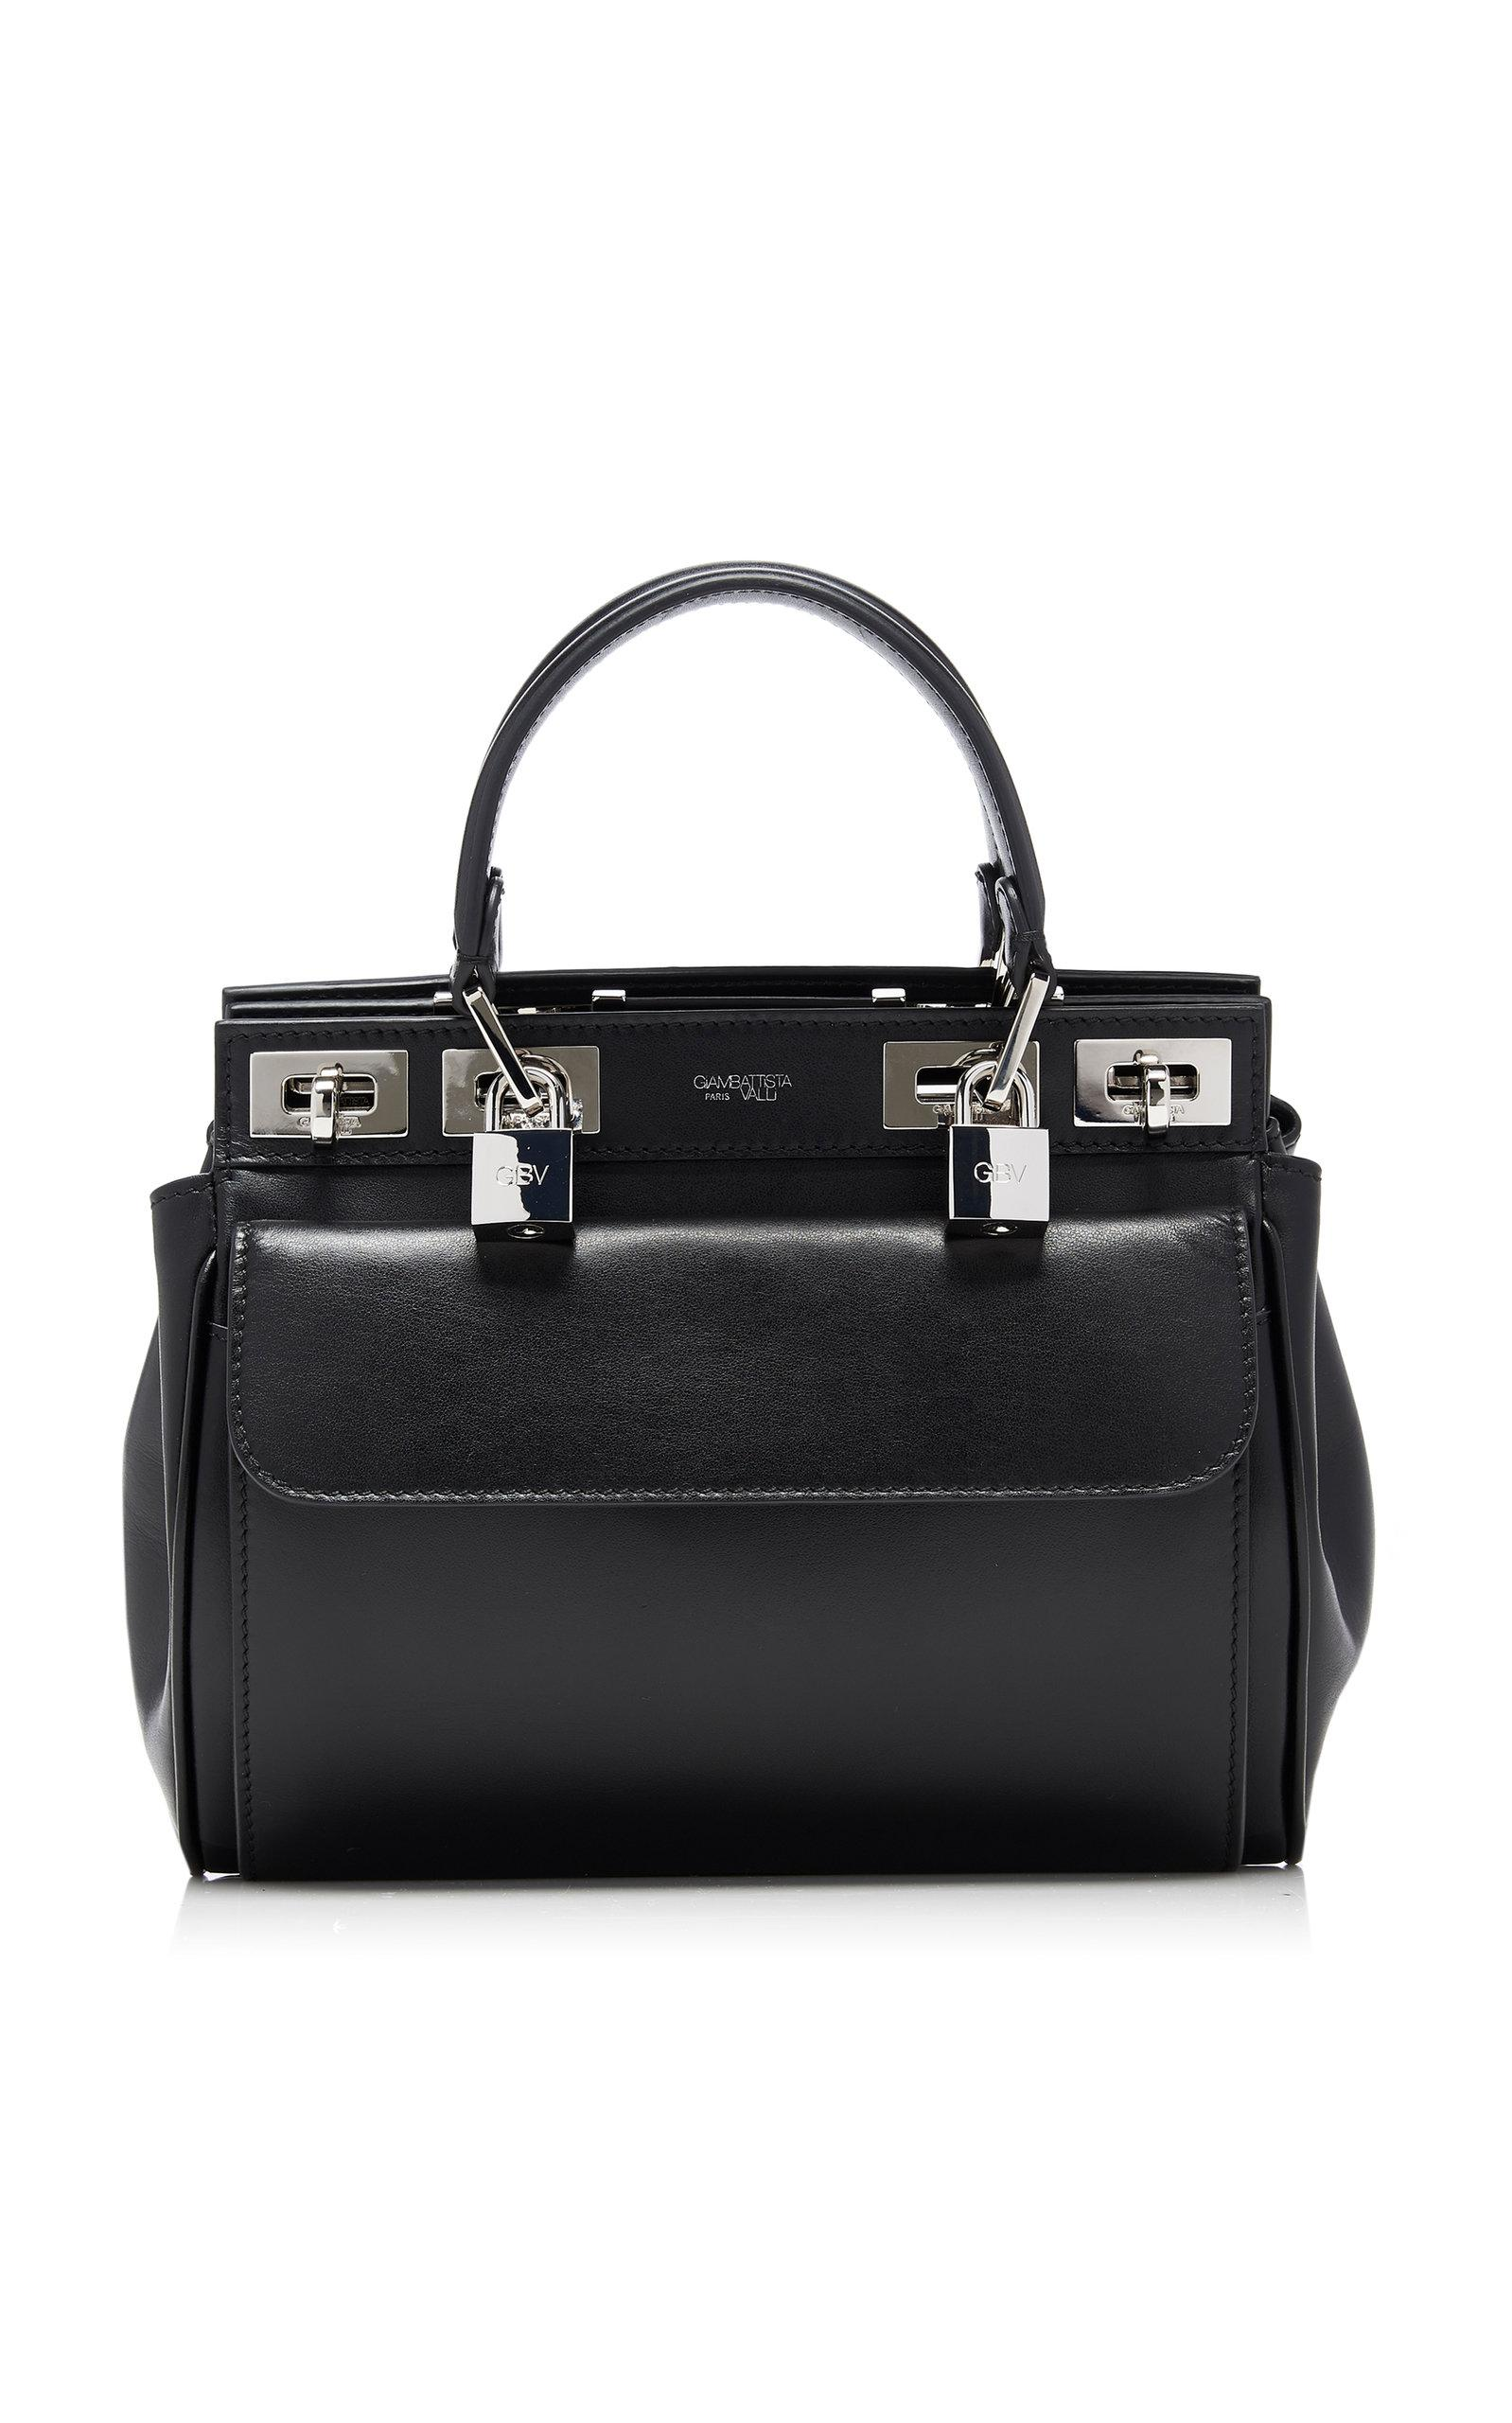 ce7c2749586 Giambattista Valli Small Lock-detailed Leather Tote in Black - Lyst